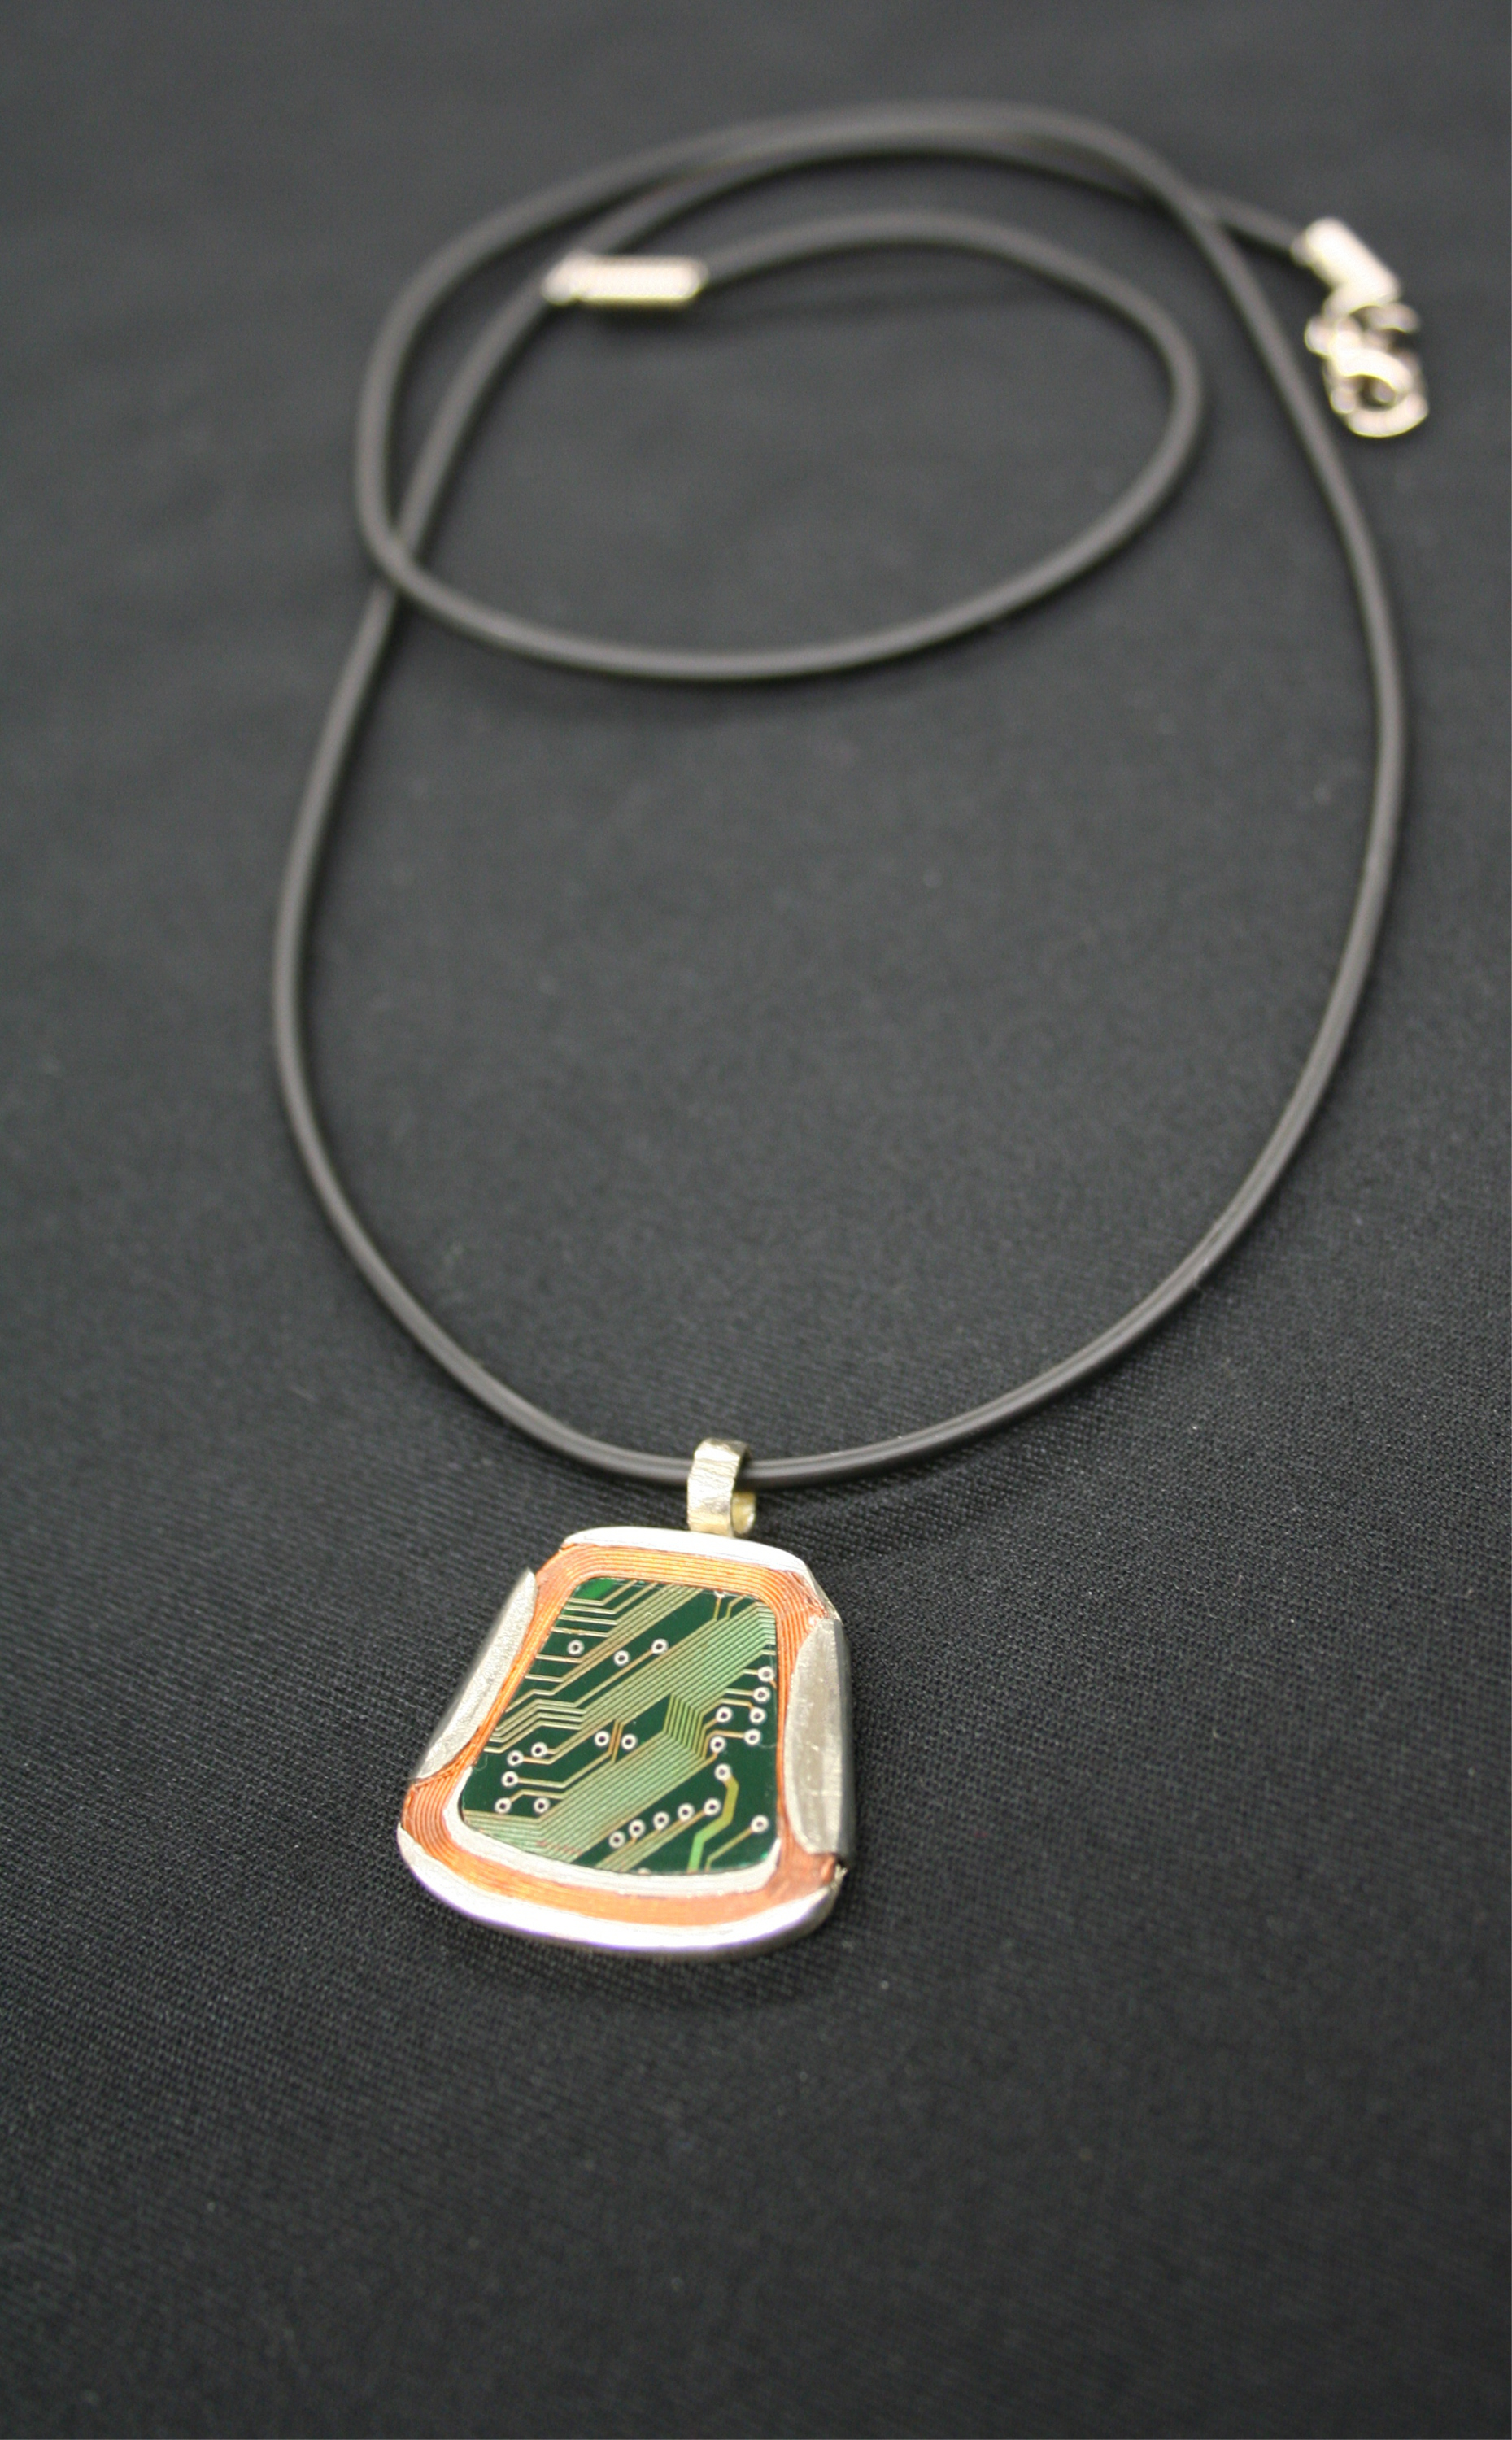 HDD Necklace 2